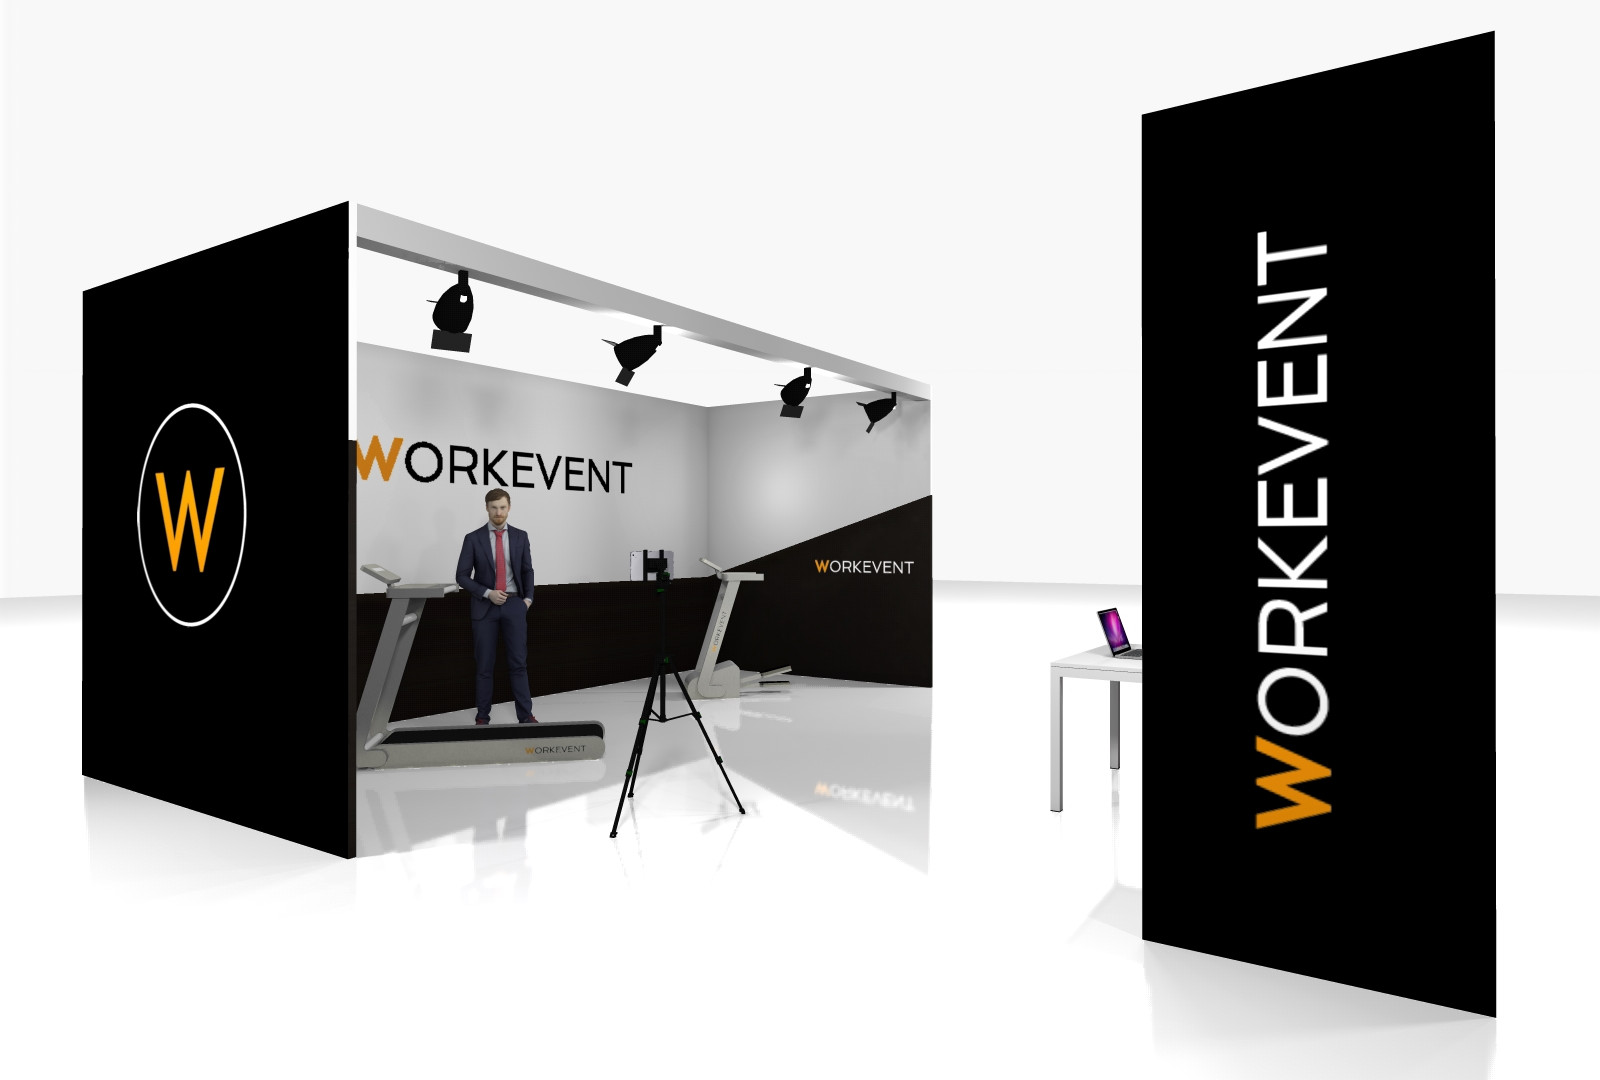 WORKEVENT